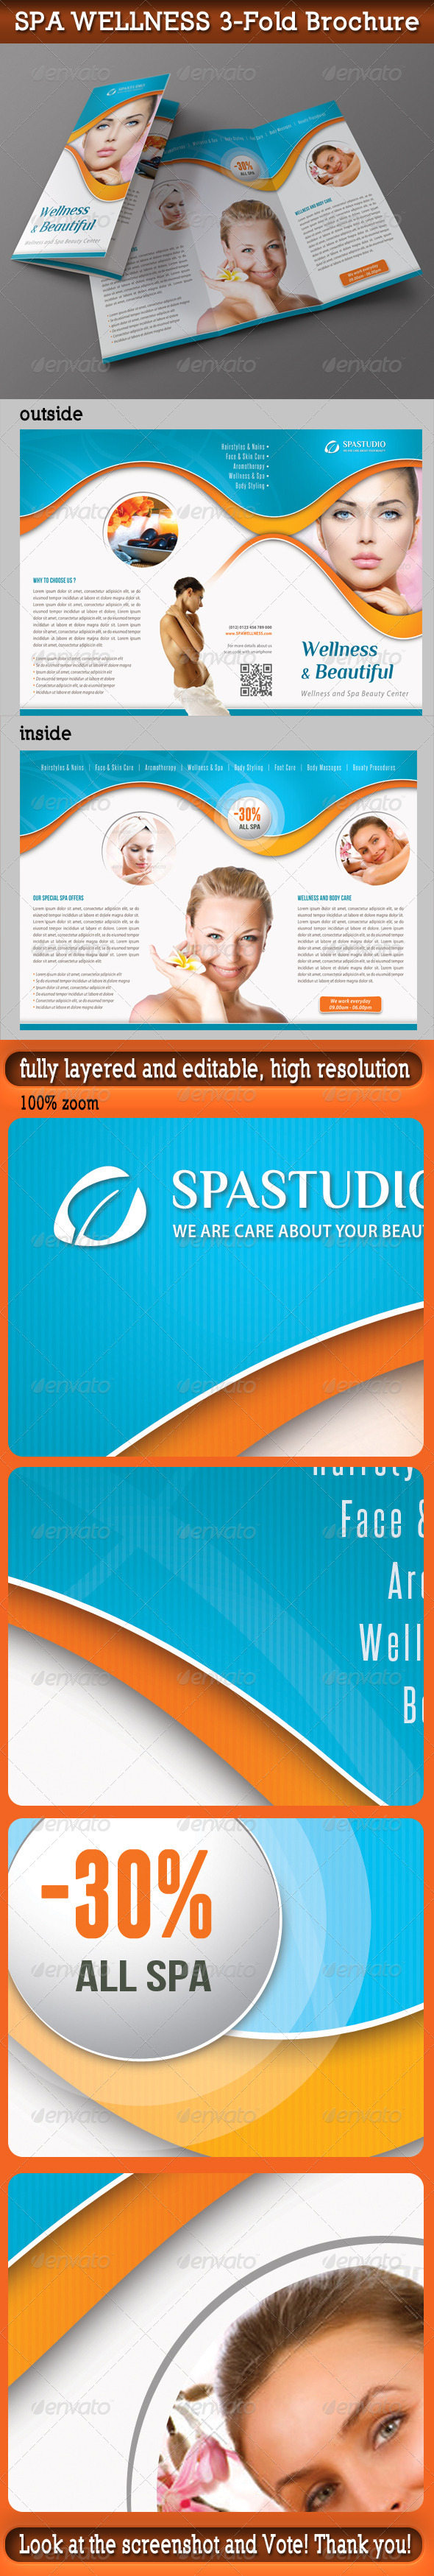 Spa Wellness 3-Fold Brochure 04